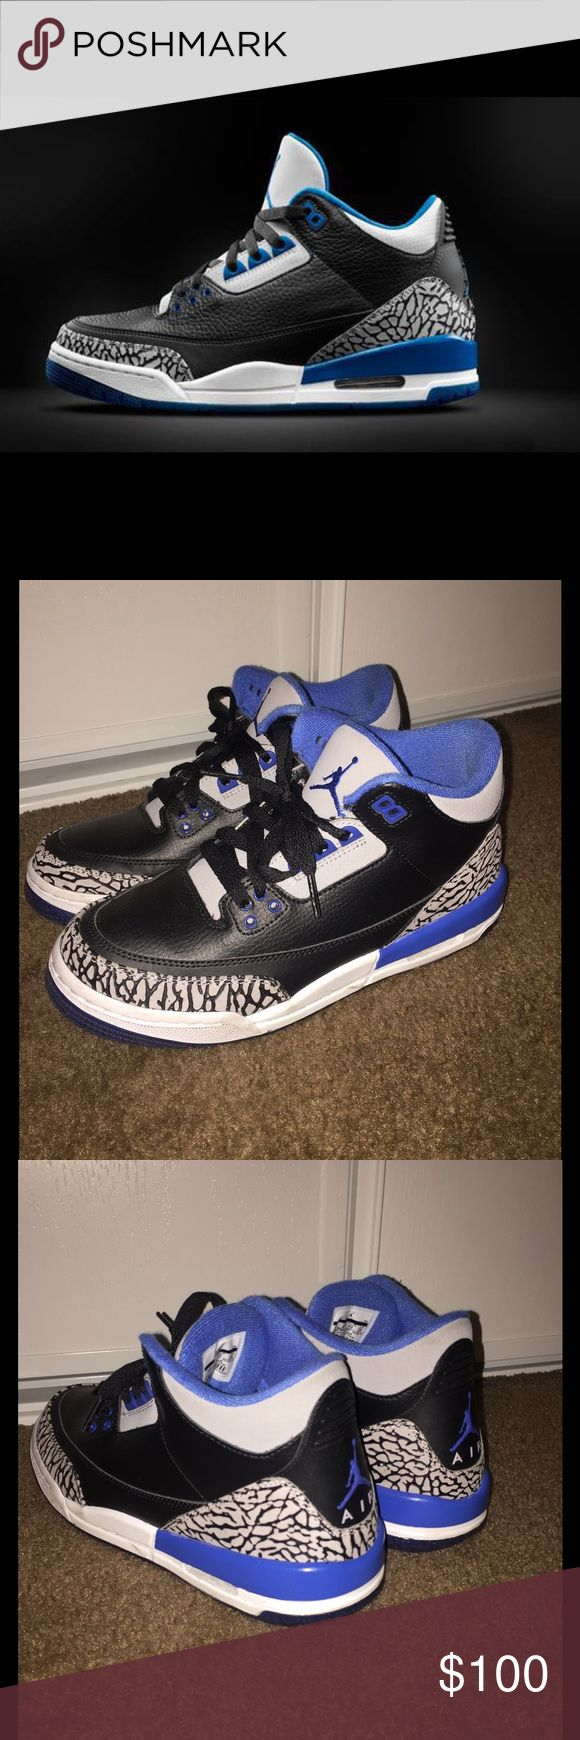 "Air Jordan Retro 3 (Grade School) Air Jordan Retro 3 ""Sports Blue"". Size 7 in youth sizes. Worn few times. Condition 8/10. Jordan Shoes Sneakers"